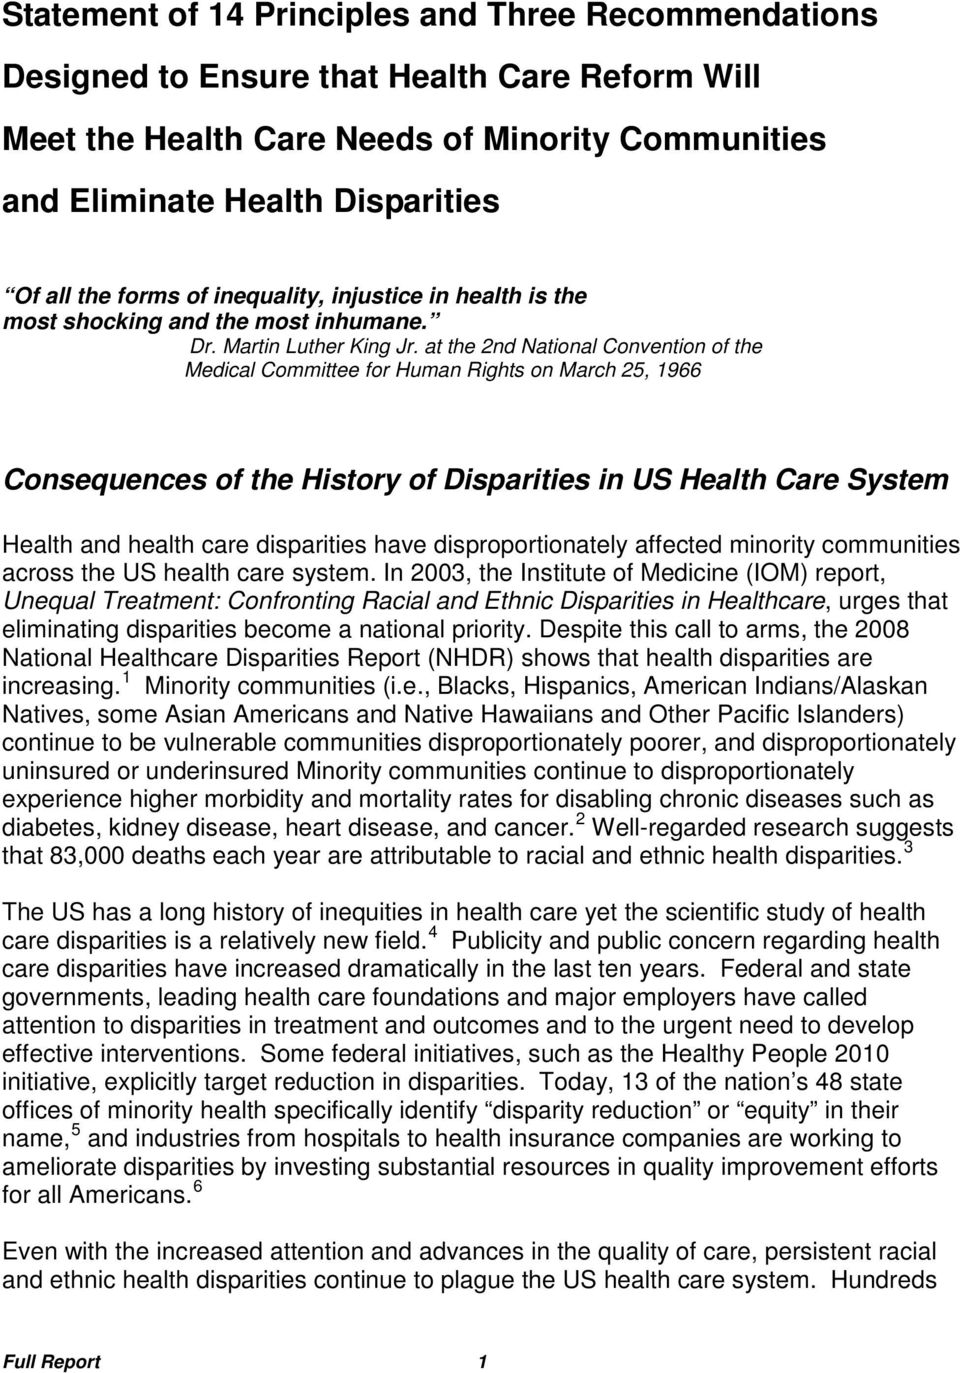 at the 2nd National Convention of the Medical Committee for Human Rights on March 25, 1966 Consequences of the History of Disparities in US Health Care System Health and health care disparities have